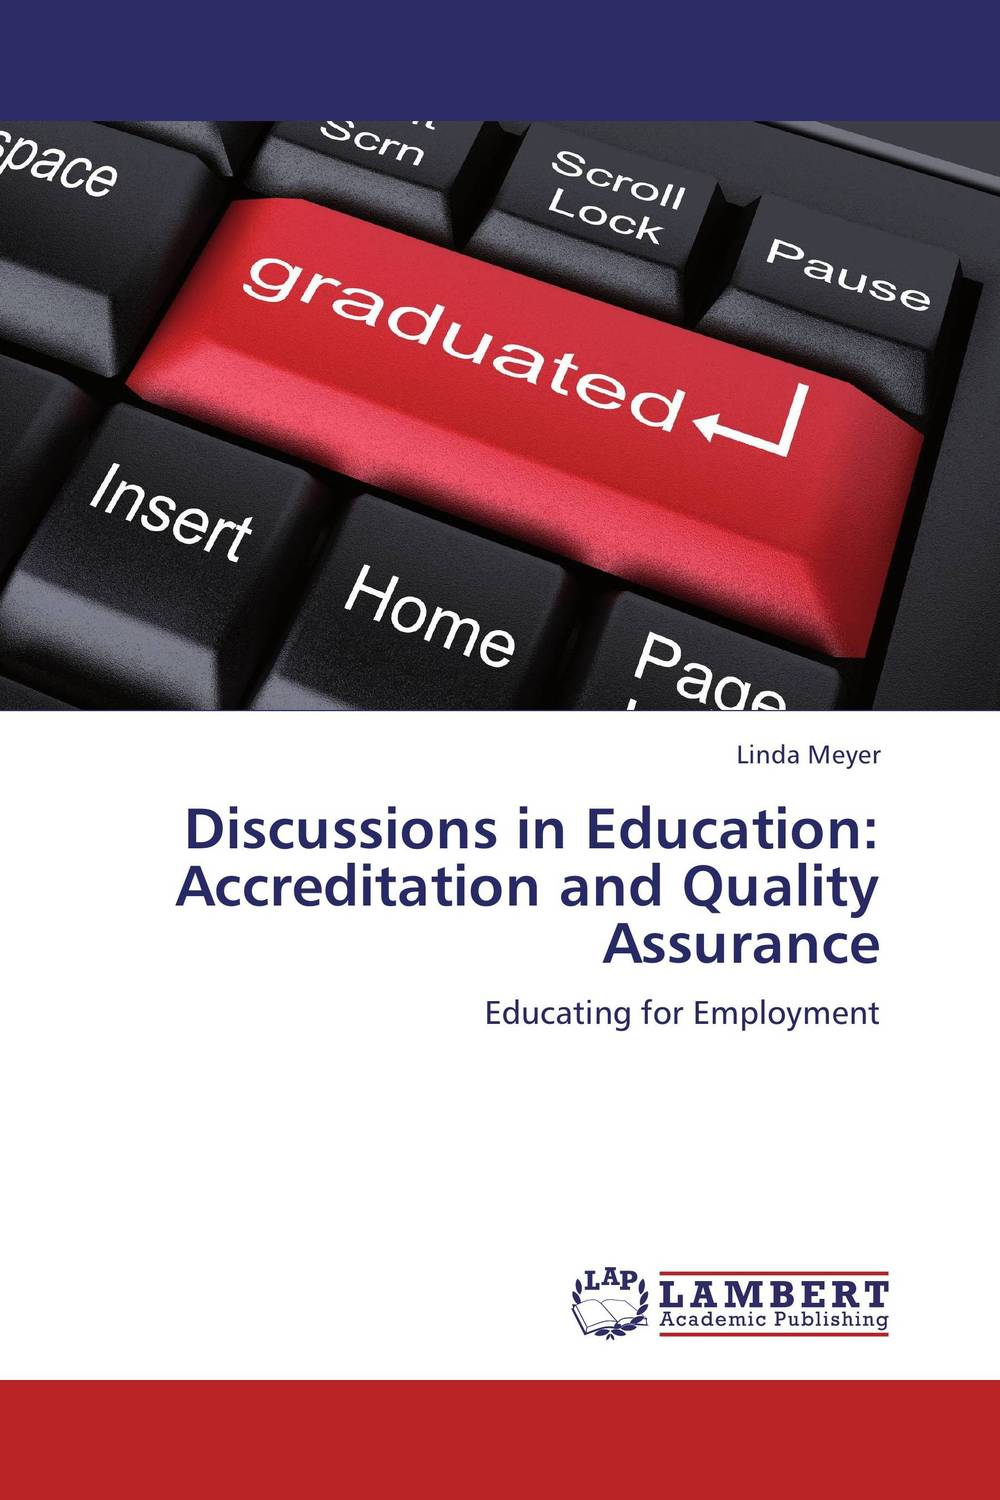 Discussions in Education: Accreditation and Quality Assurance антенна wi fi ubiquiti am 5ac22 45 am 5ac22 45